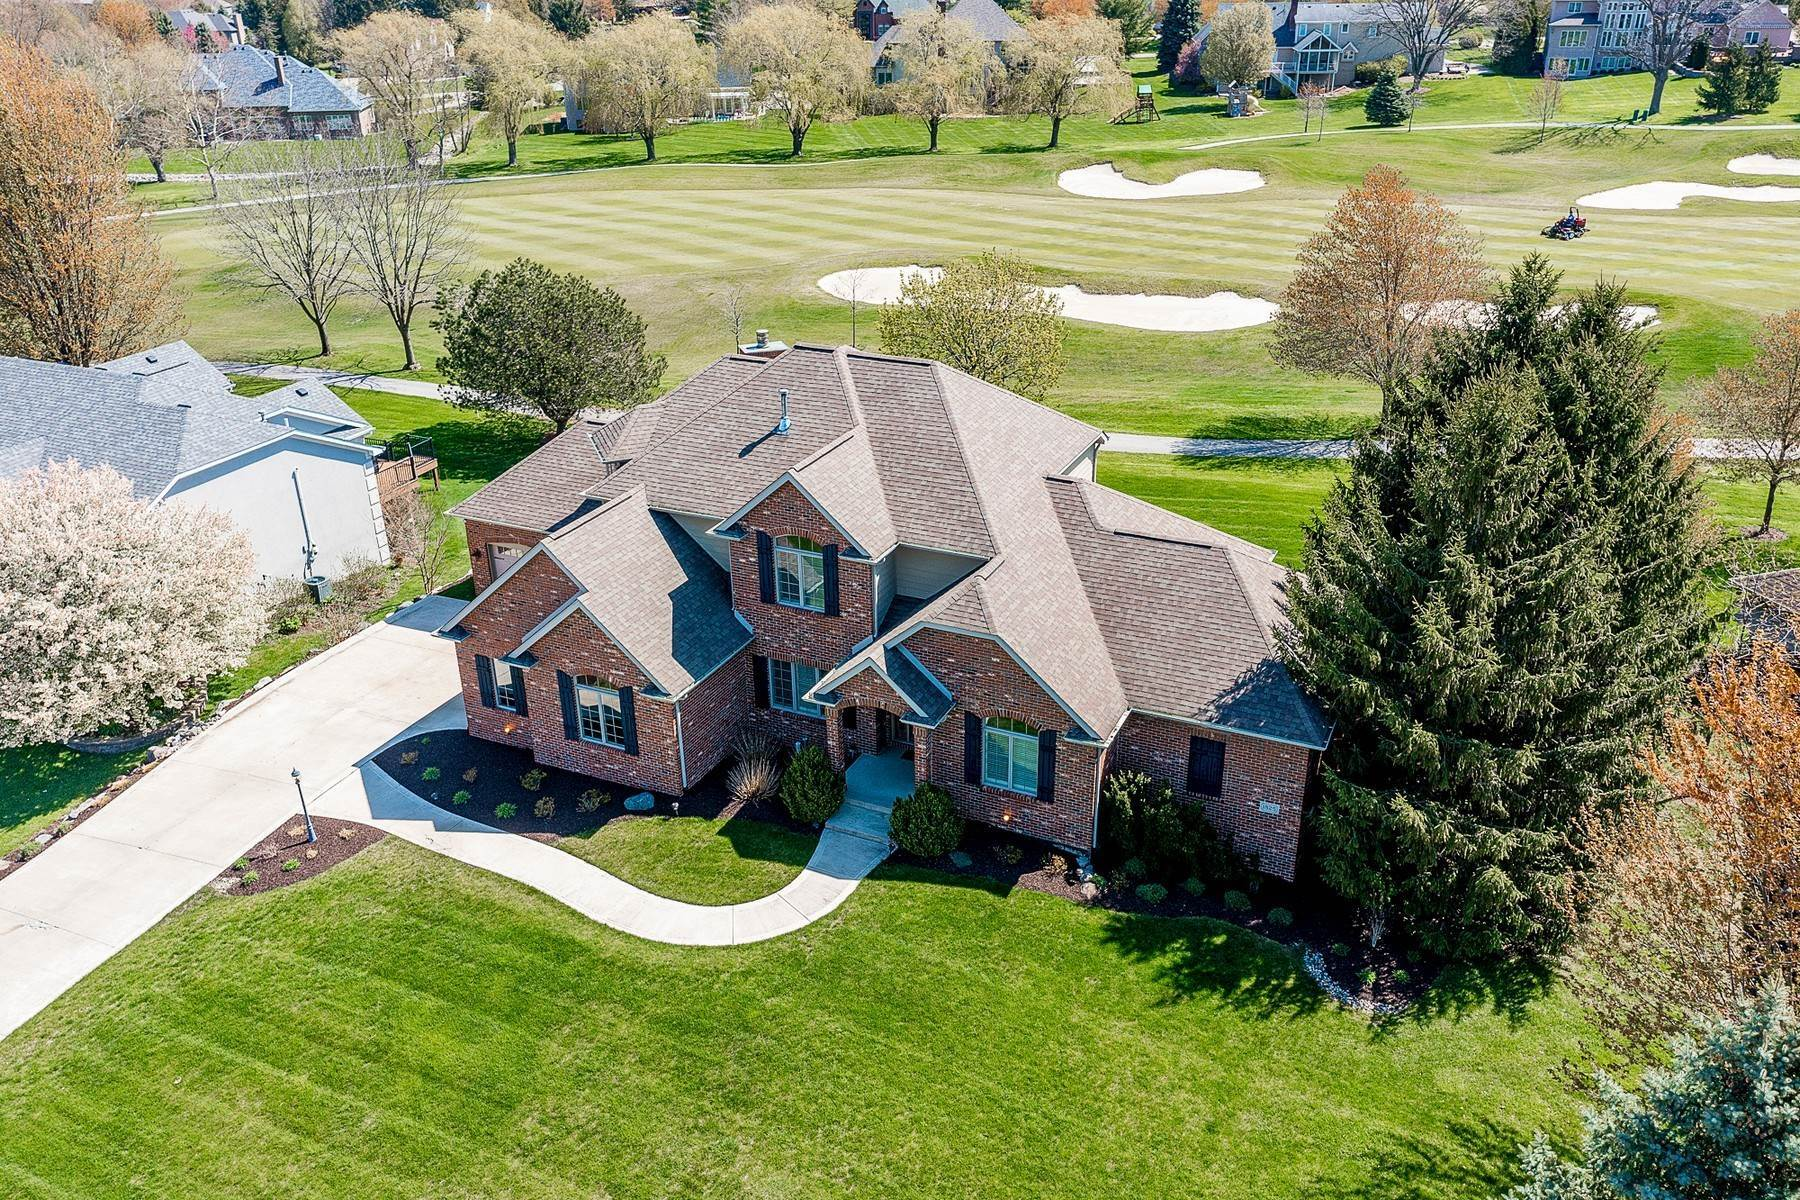 Single Family Homes for Sale at Executive Home on Golf Course 1825 Prestwick Lane Fort Wayne, Indiana 46814 United States